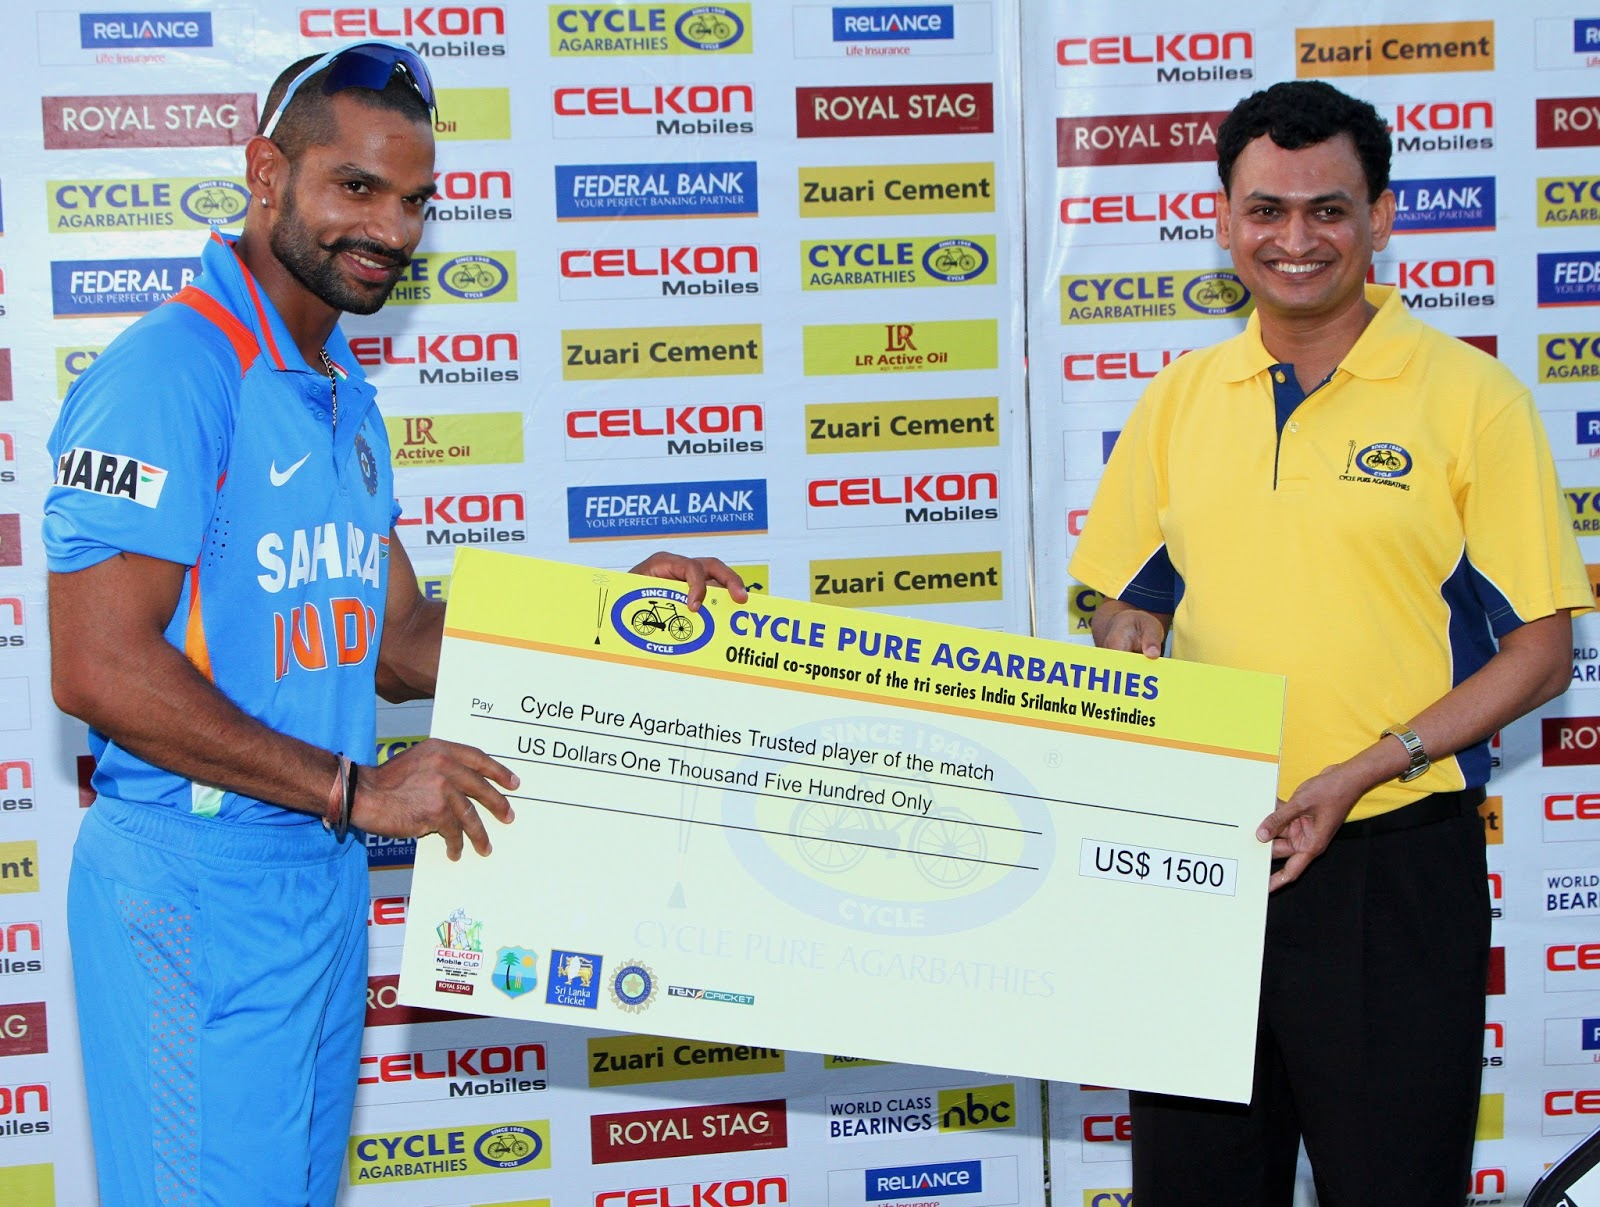 Shikhar-Dhawan-Trusted-Player-of-the-Match-West-Indies-vs-India-Tri-Series-2013